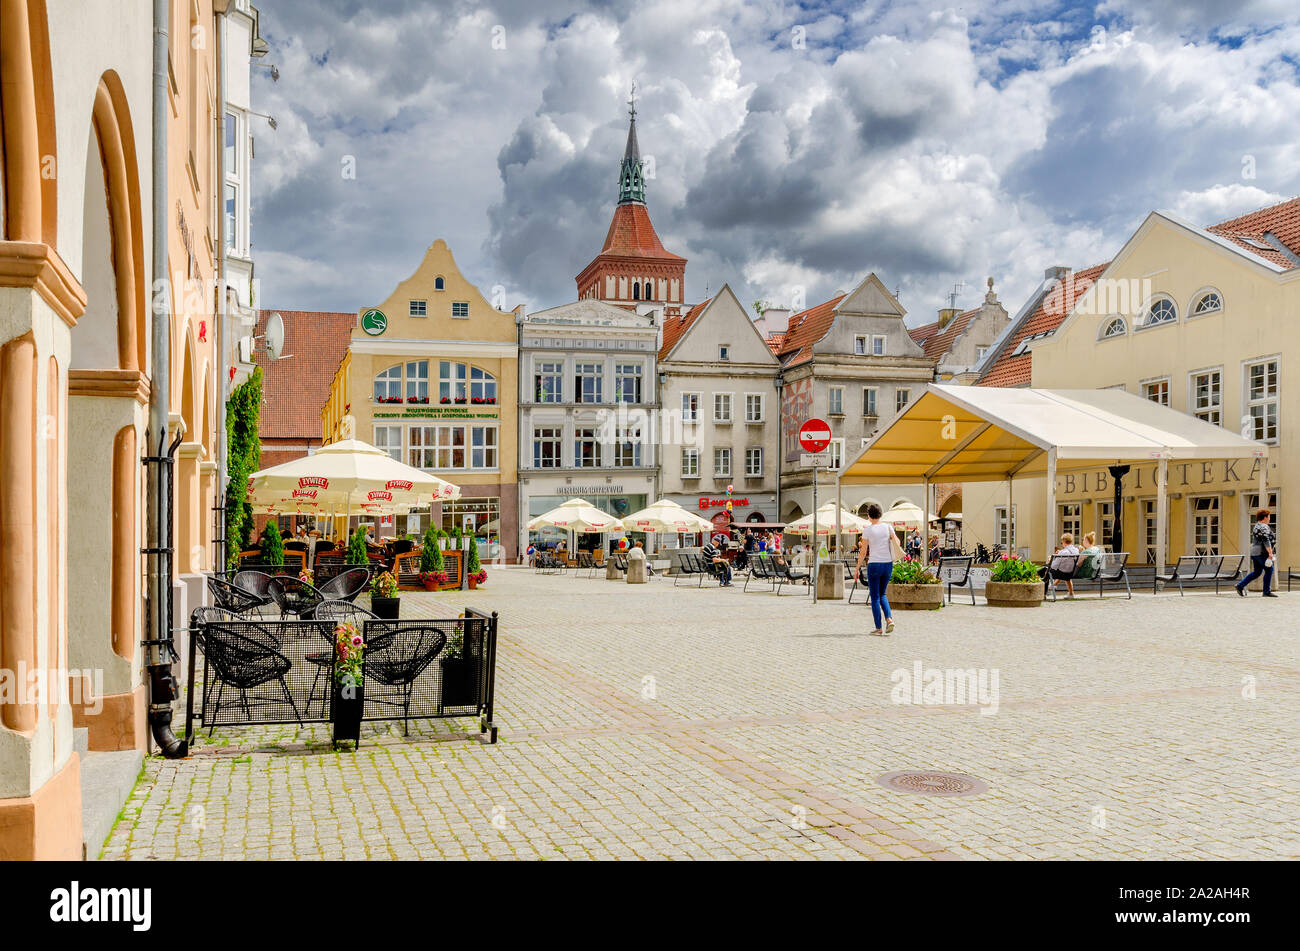 Olsztyn (ger.: Allenstein), Warmian-mazurian province, Poland. The Old Town Marketplace Stock Photo